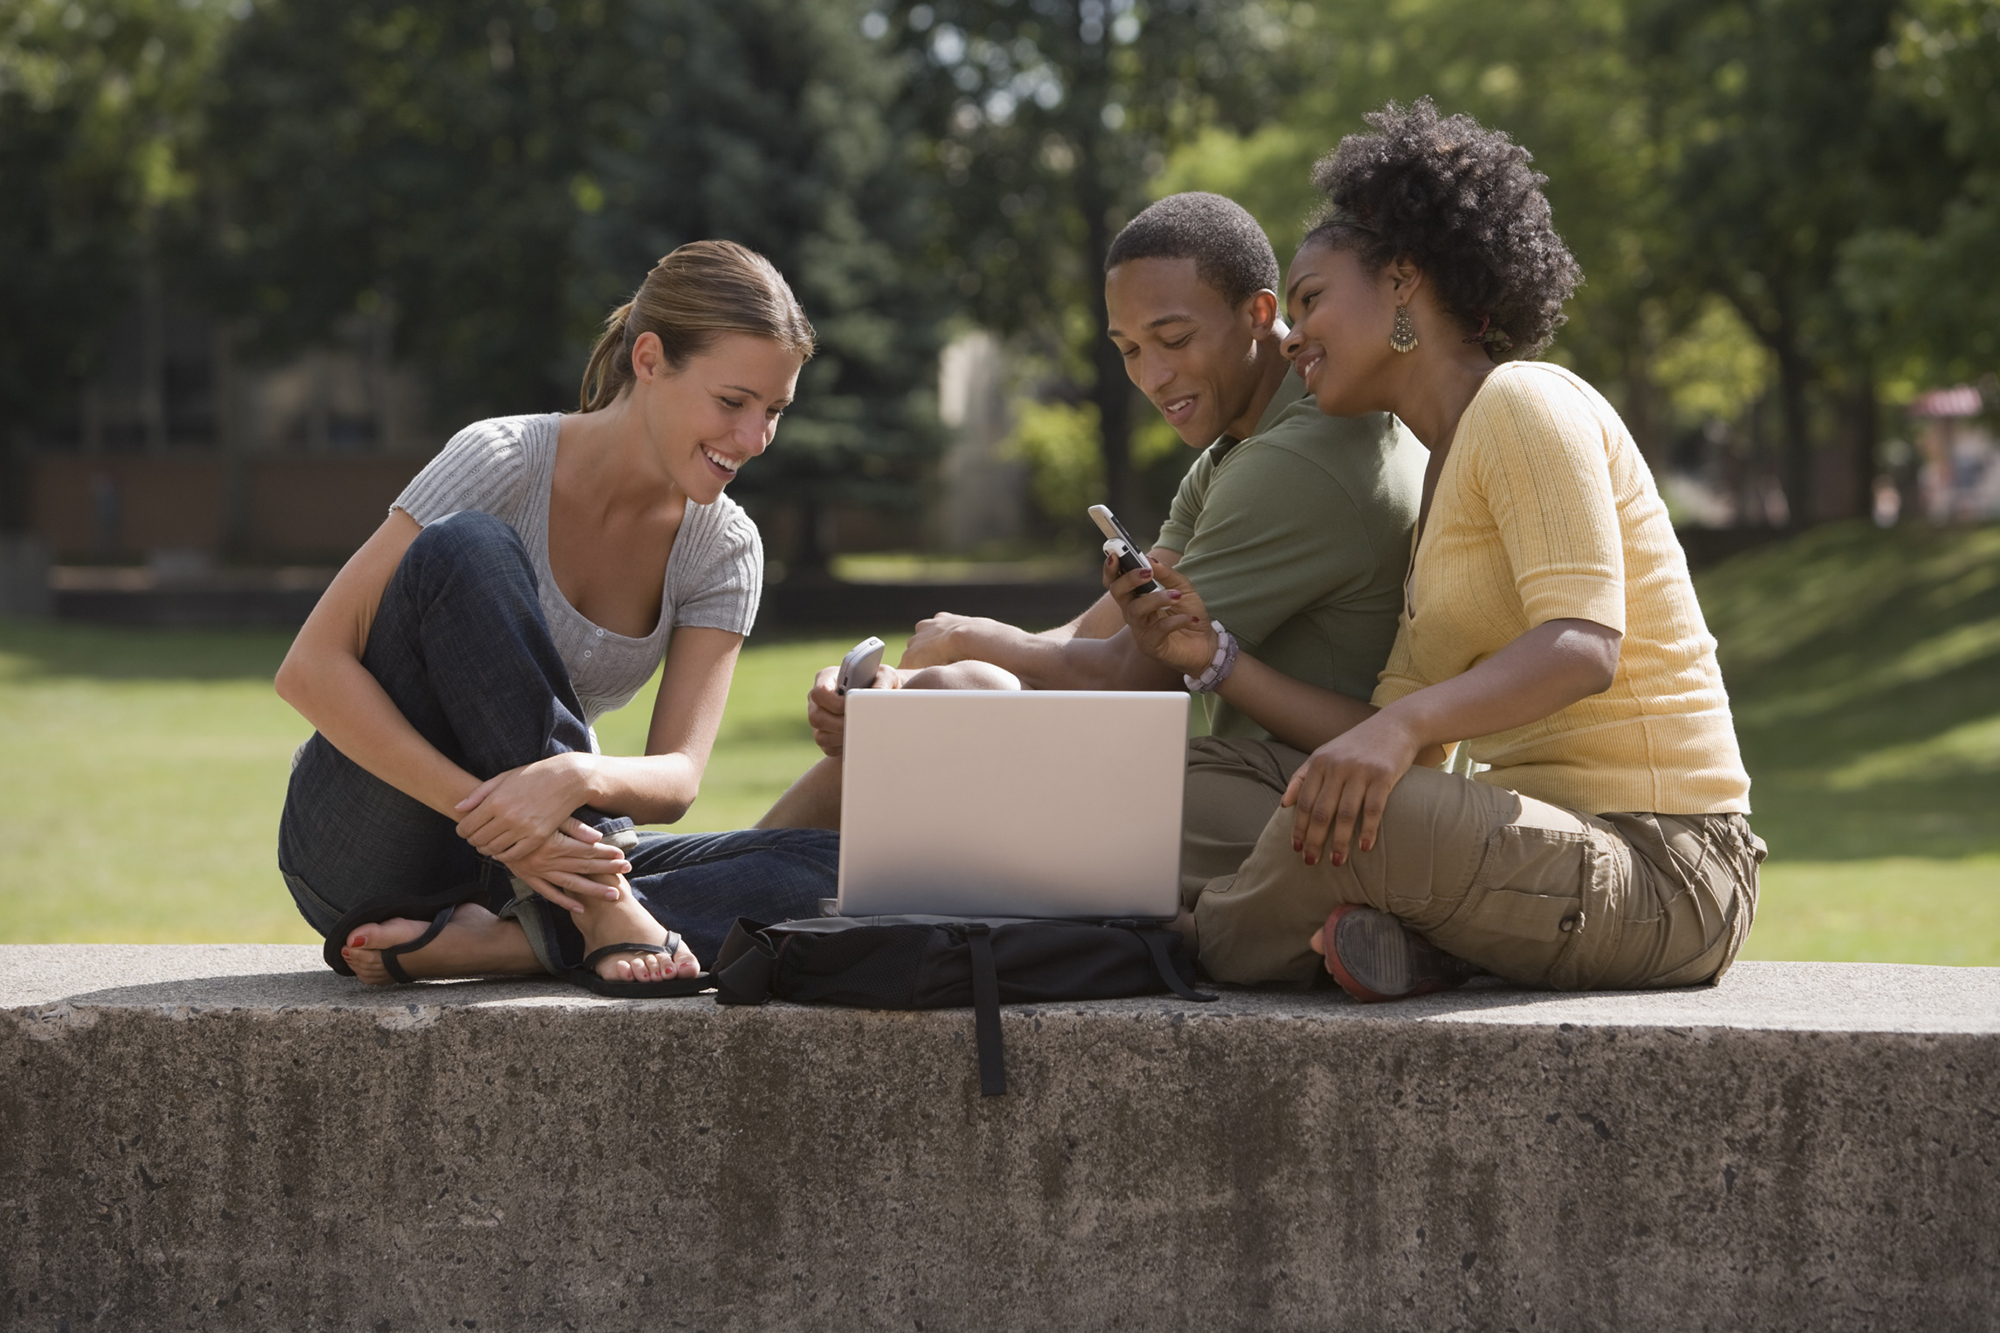 Two female students and one male student sitting outdoors looking at a laptop and phone smiling.